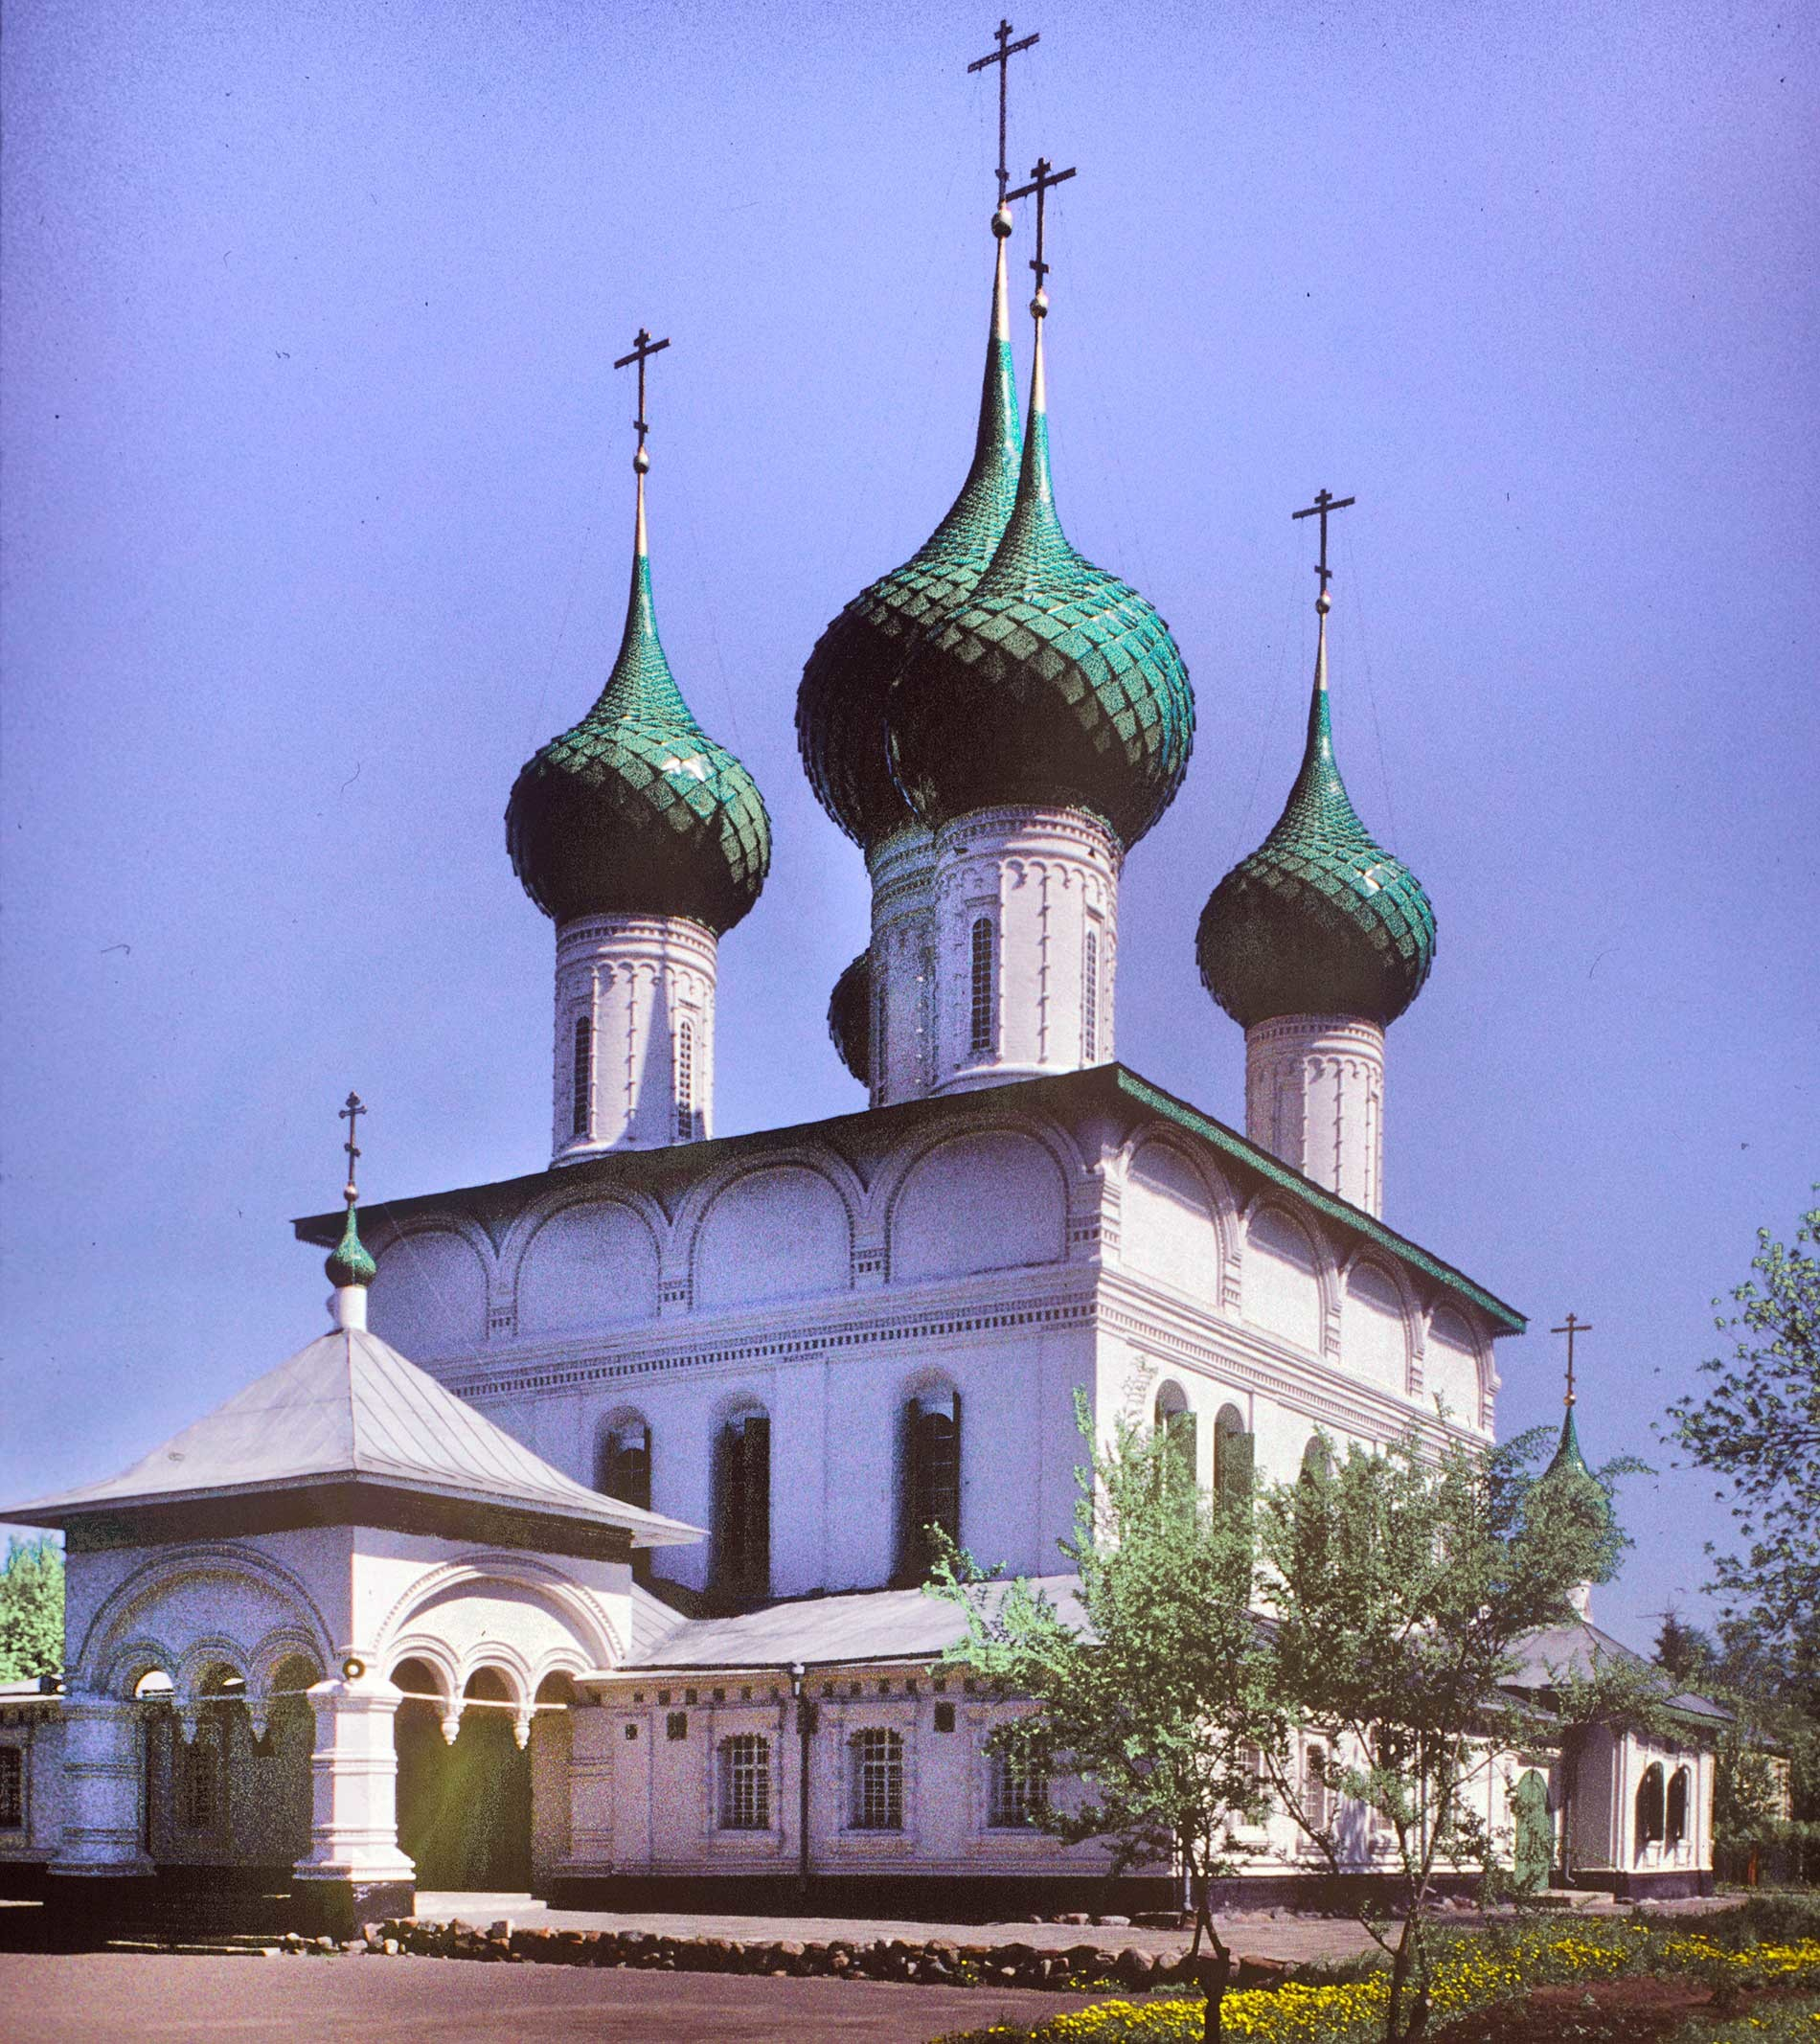 Yaroslavl. Church of the Feodorovskaya Icon of the Virgin. Southwest view. May 22, 1996.